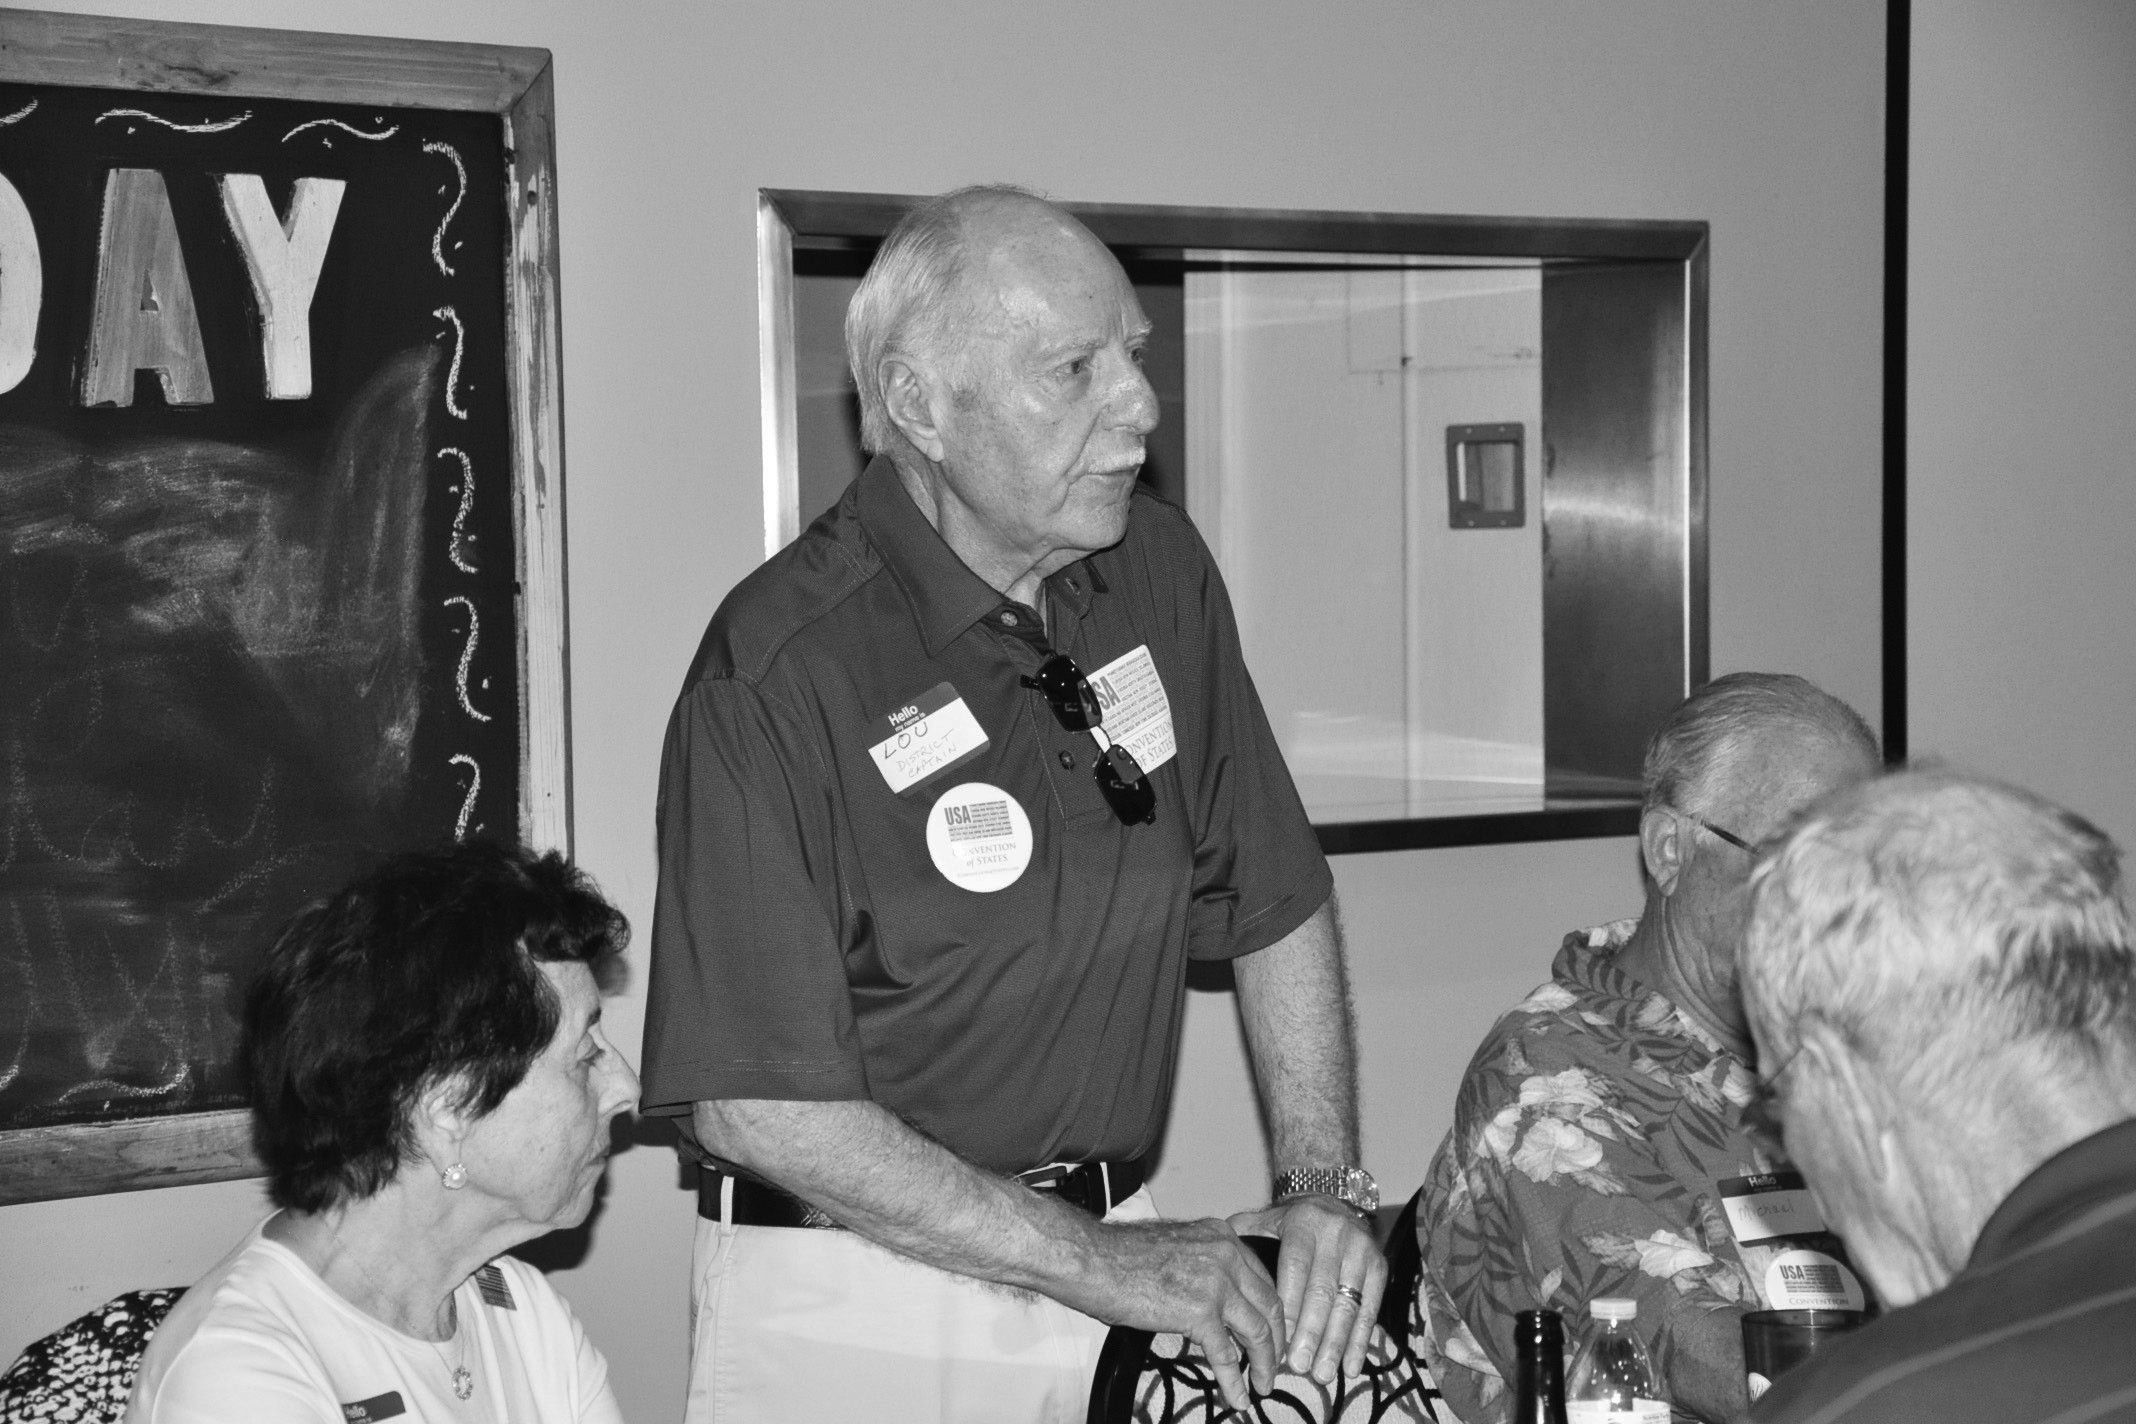 Lou Oberman-District Captain/CA Senate District 39/CA Assembly District 78 talks about why he joined the movement.